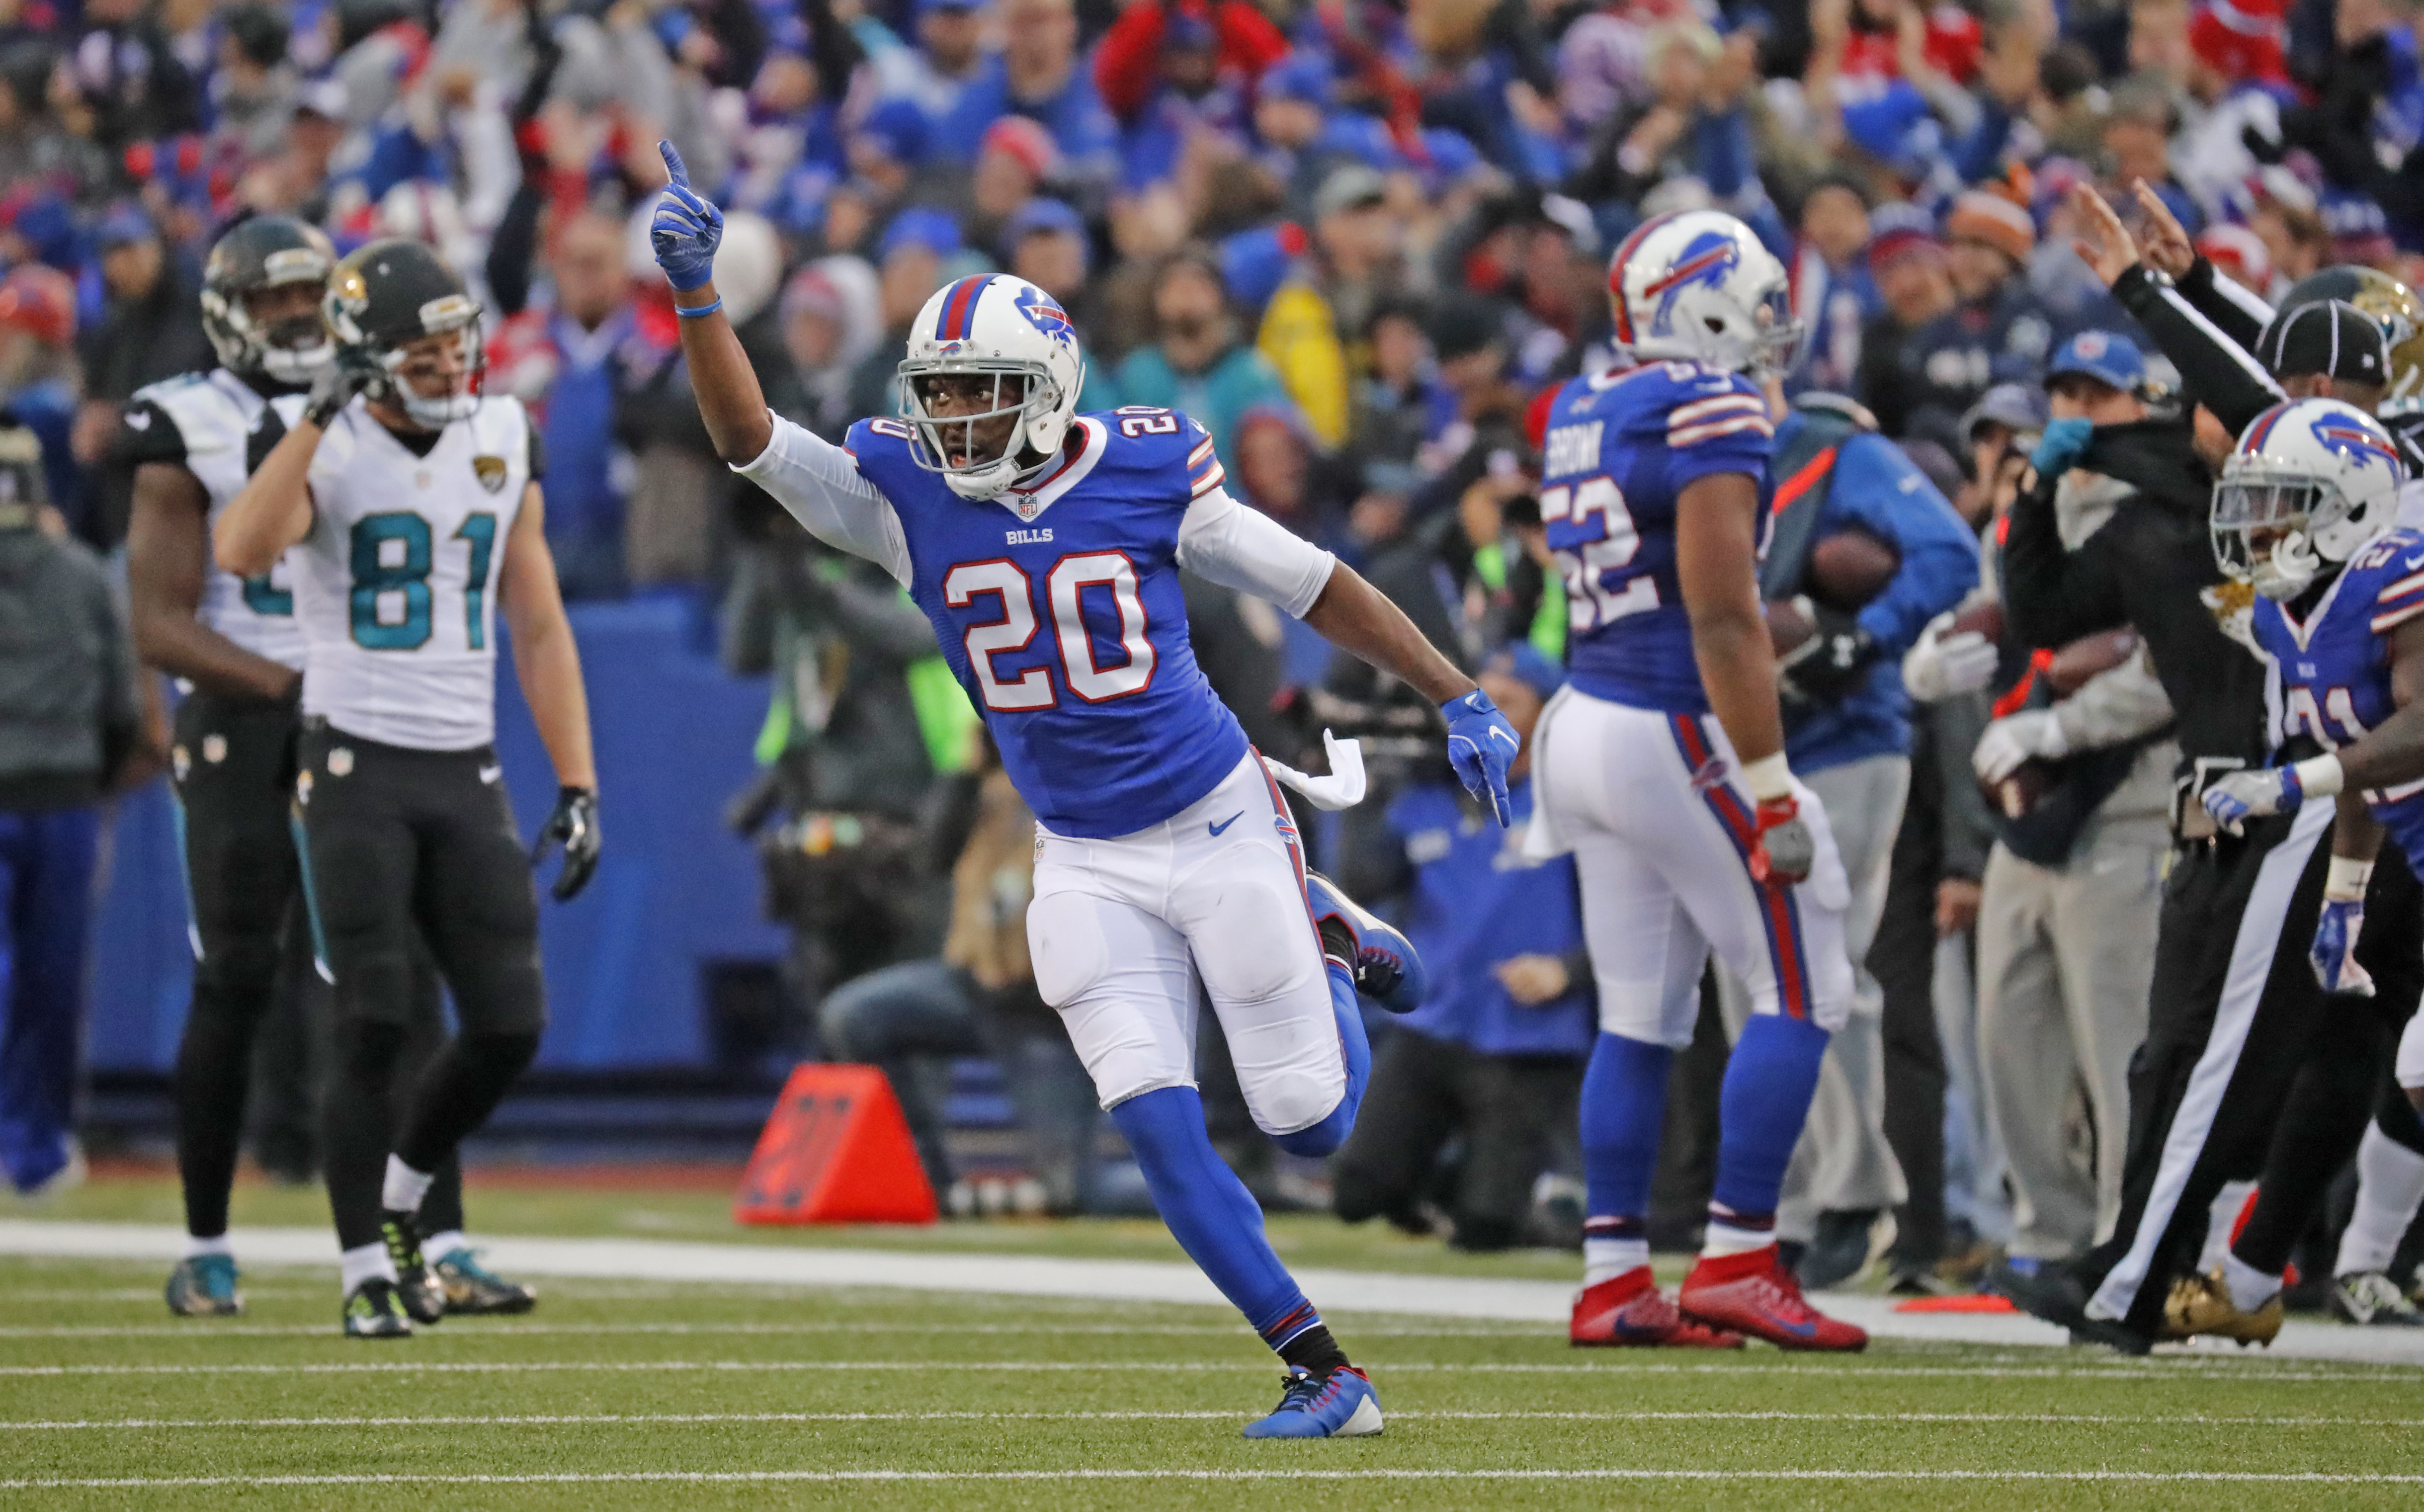 Buffalo Bills Corey Graham runs back to the bench after the defense stopped the Jacksonville Jaguars during fourth quarter action at New Era Field. (Harry Scull Jr./Buffalo News)